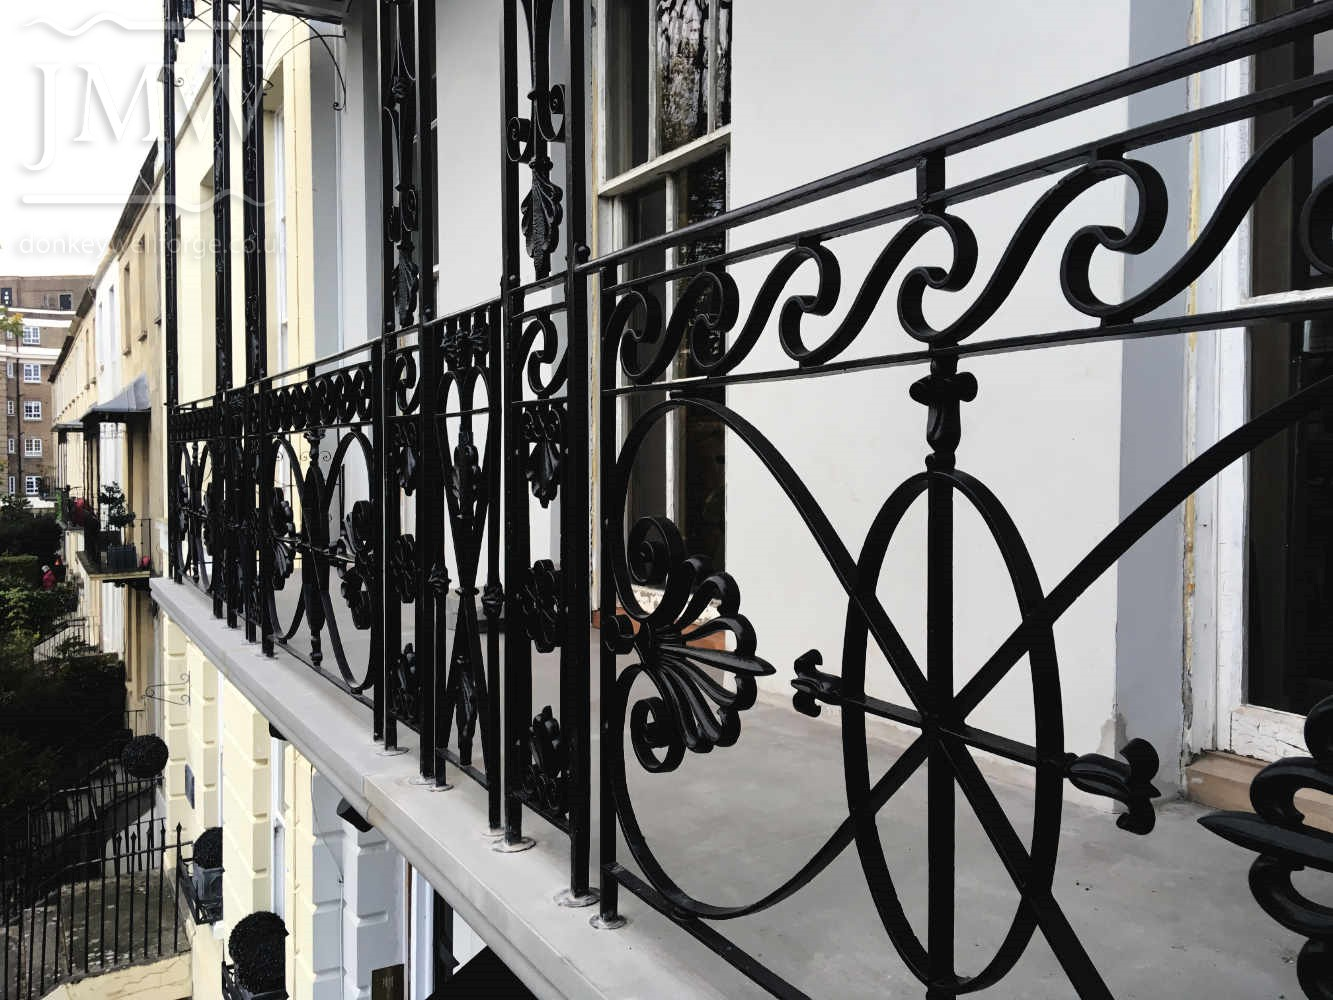 balcony-railings-iron-forge-blacksmith-cheltenham-restoration-donkeywell-forge-lead-castings